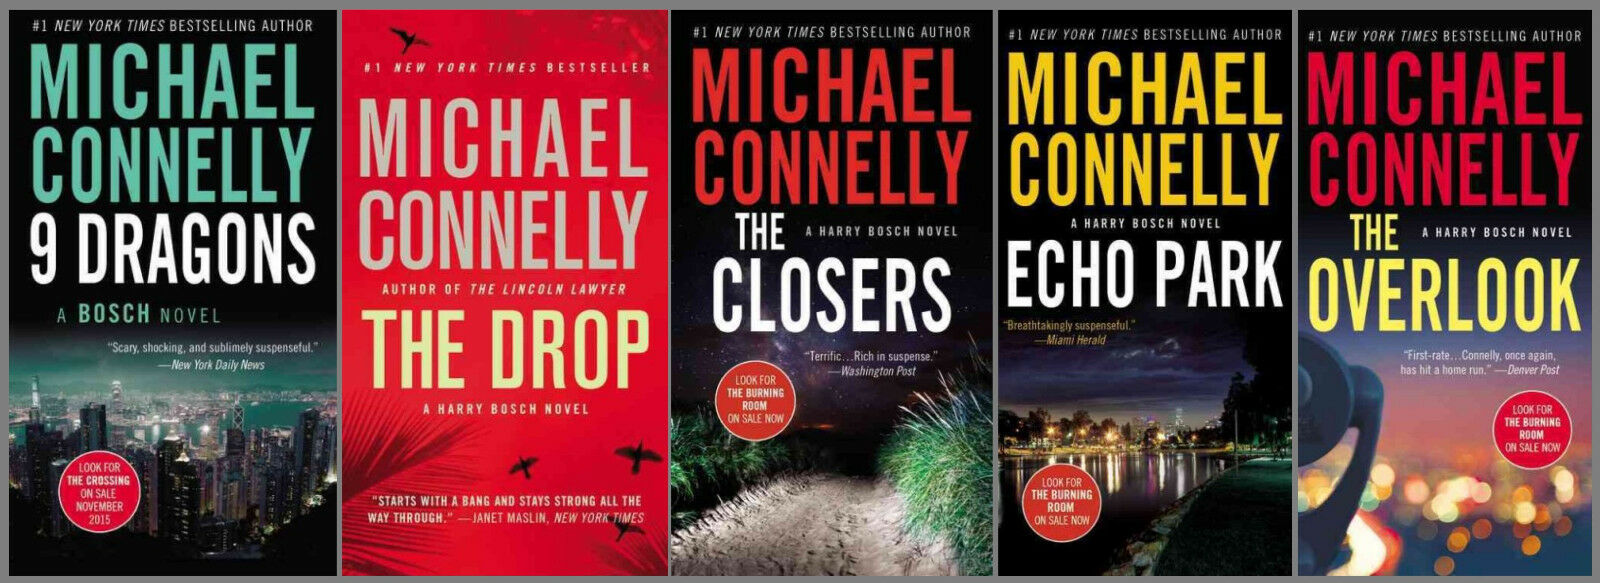 """Image for """"HARRY BOSCH Series by Michael Connelly - Set of Paperbacks 11-15! by Connelly, Michael"""""""